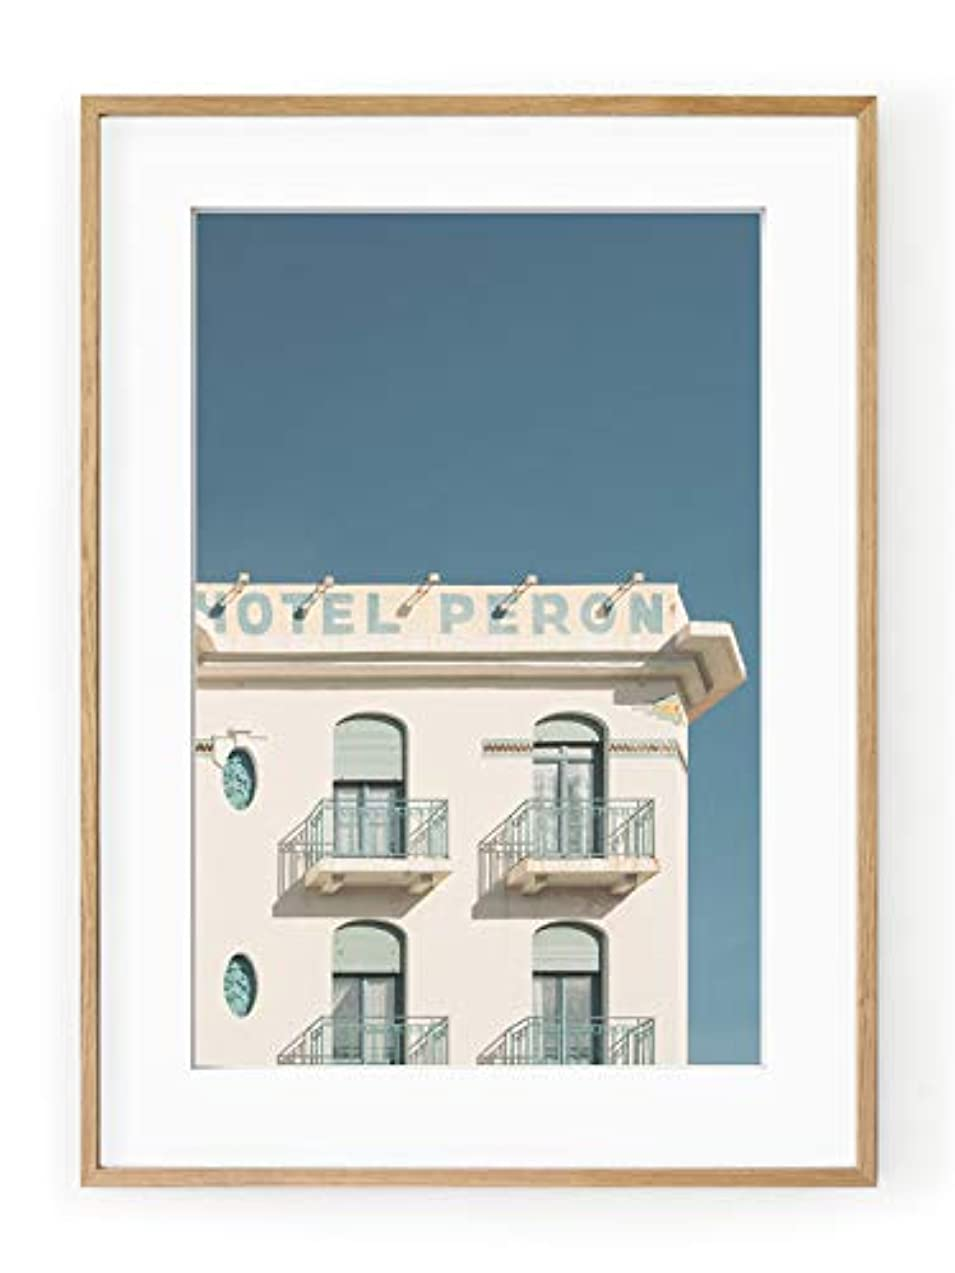 Hotel Peron Black Satin Aluminium Frame with Mount, Multicolored, 50x70